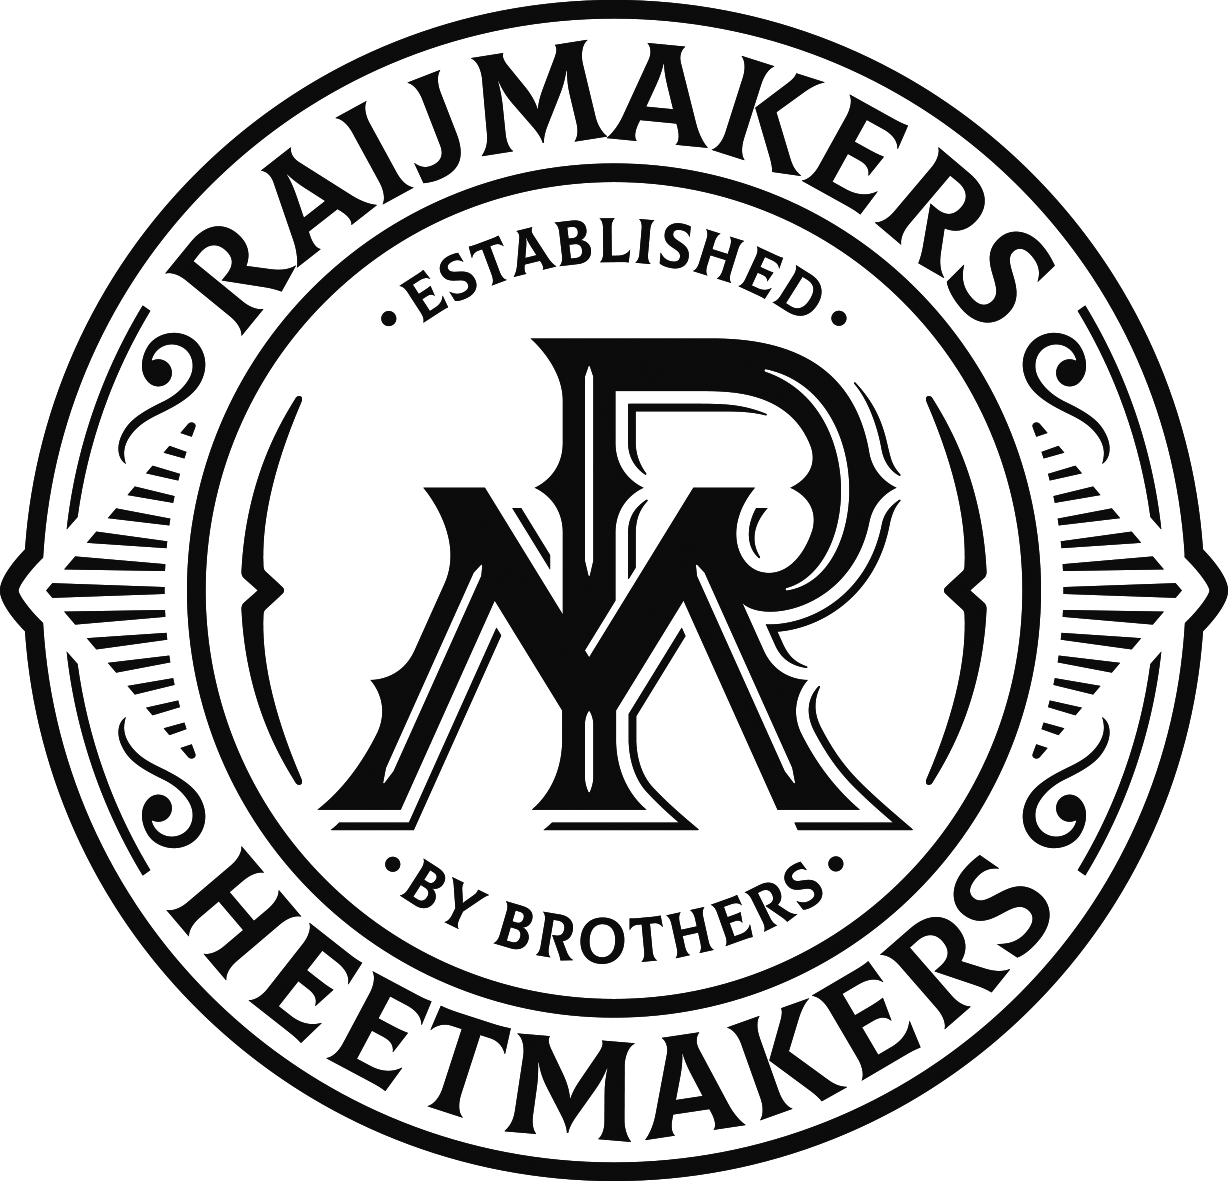 Raijmakers Heetmakers